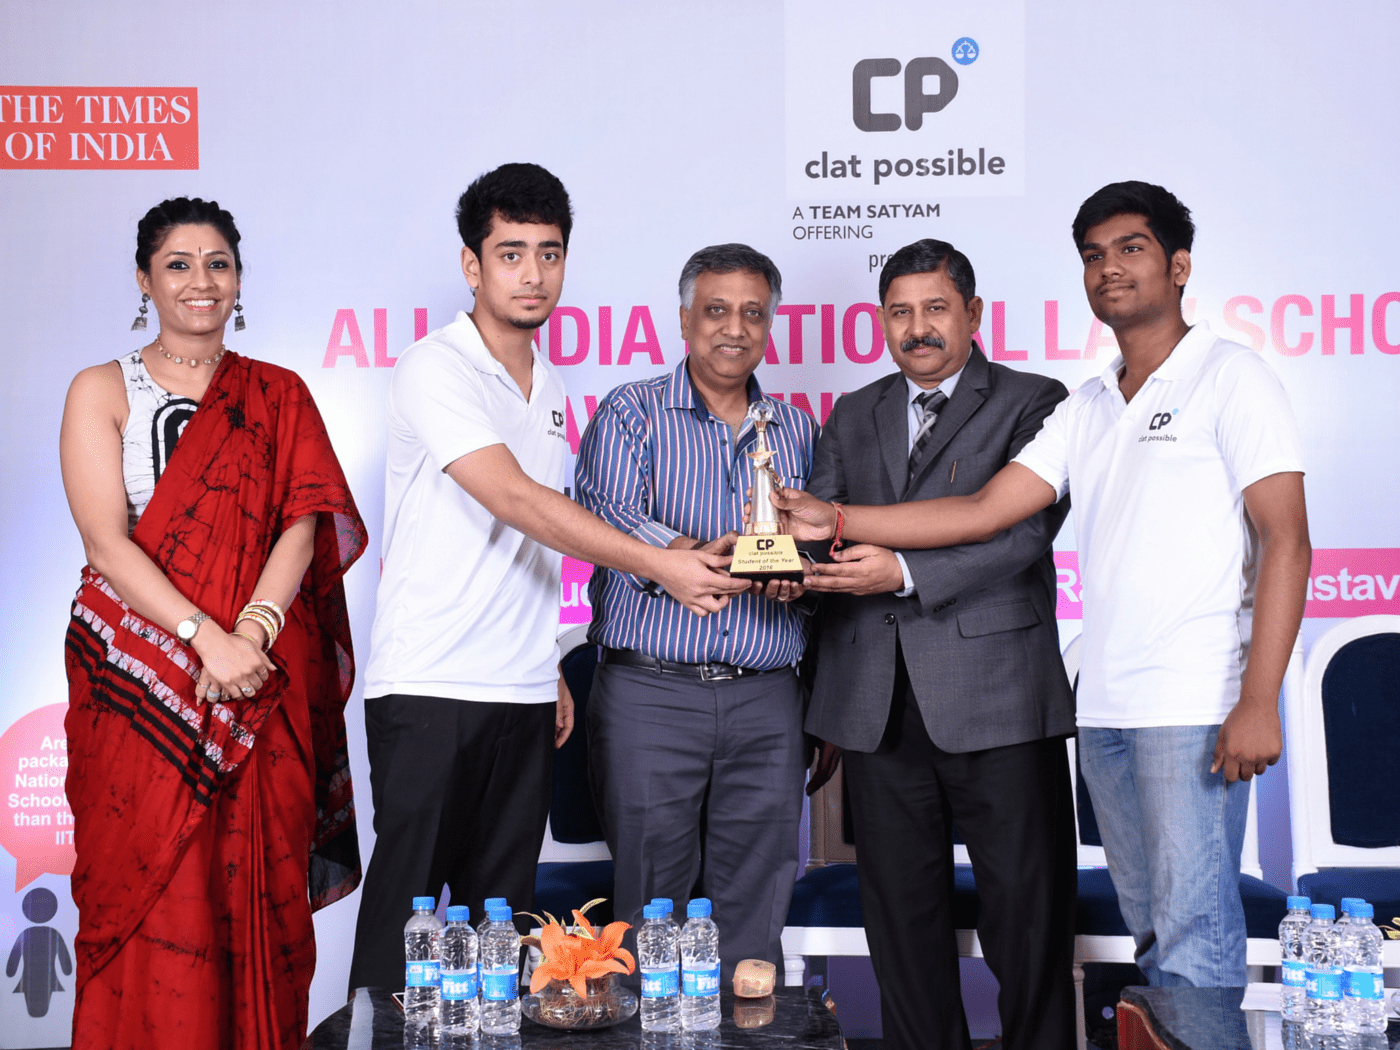 CP STUDENT OF THE YEAR TROPHY BEING SHARED BY AIR 1 VIRAJ AND AIR 2 VANSH AGGARWAL